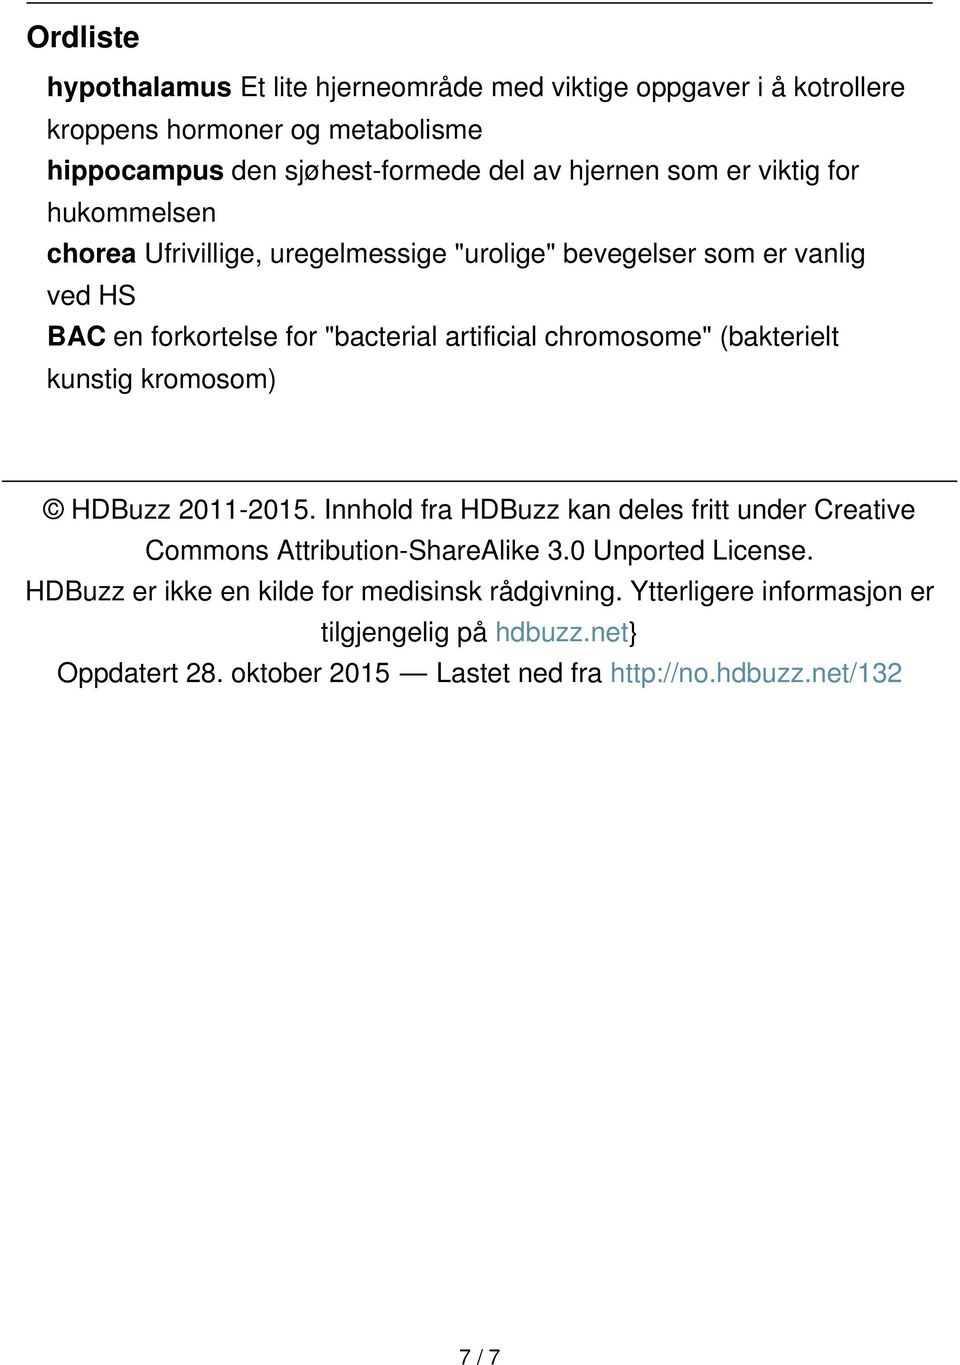 (bakterielt kunstig kromosom) HDBuzz 2011-2015. Innhold fra HDBuzz kan deles fritt under Creative Commons Attribution-ShareAlike 3.0 Unported License.